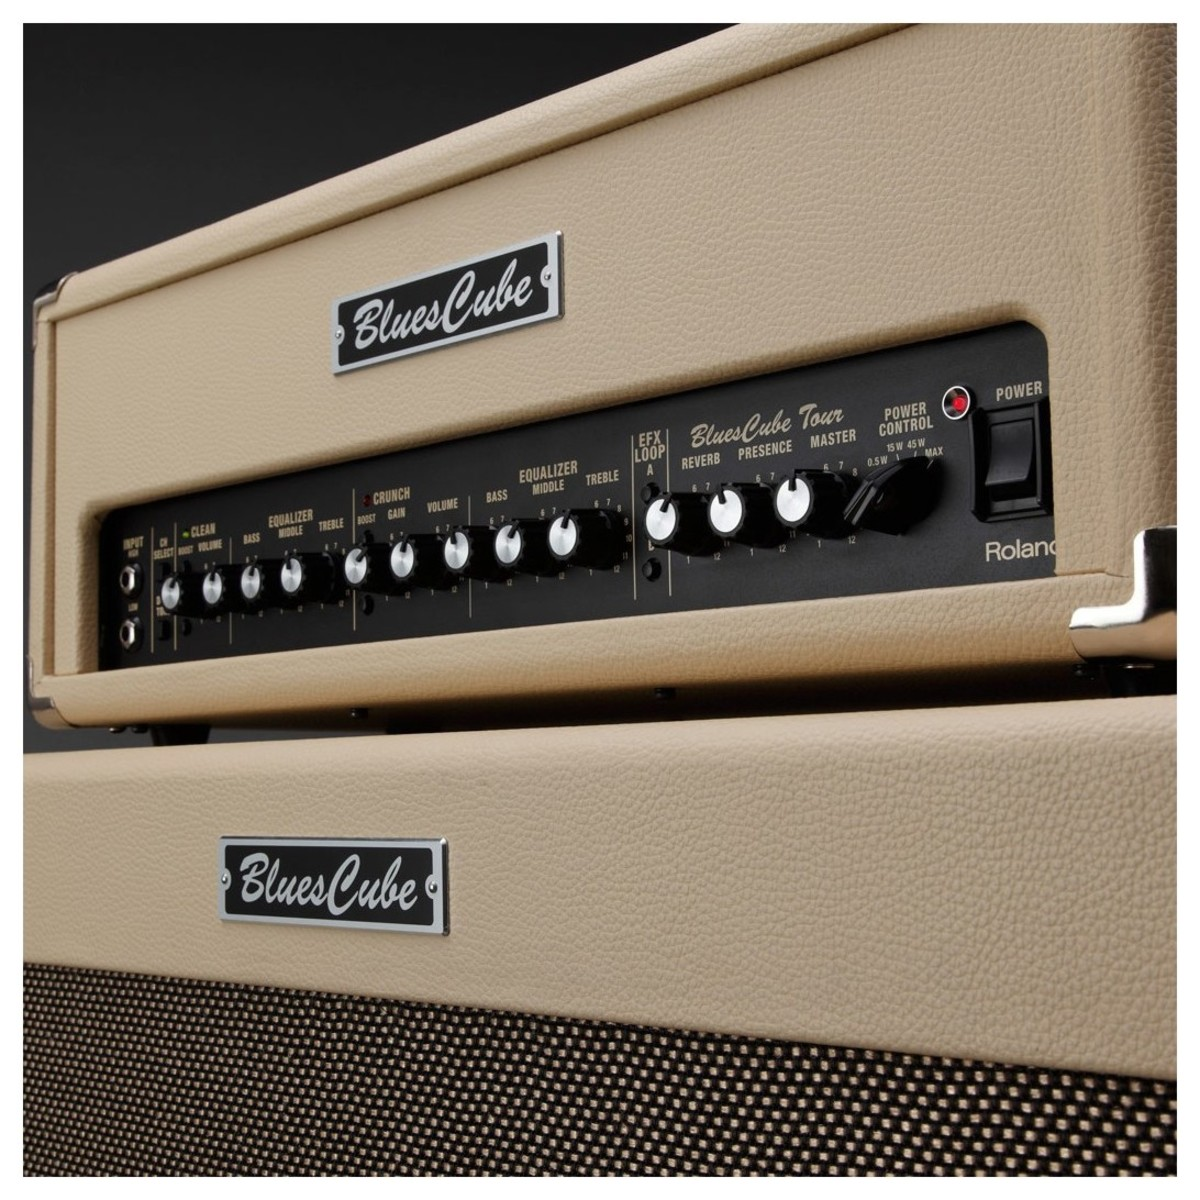 Roland Blues Cube Tour 100w Half Stack At Gear4music 45w Power Amplifier Include Tone Control Loading Zoom